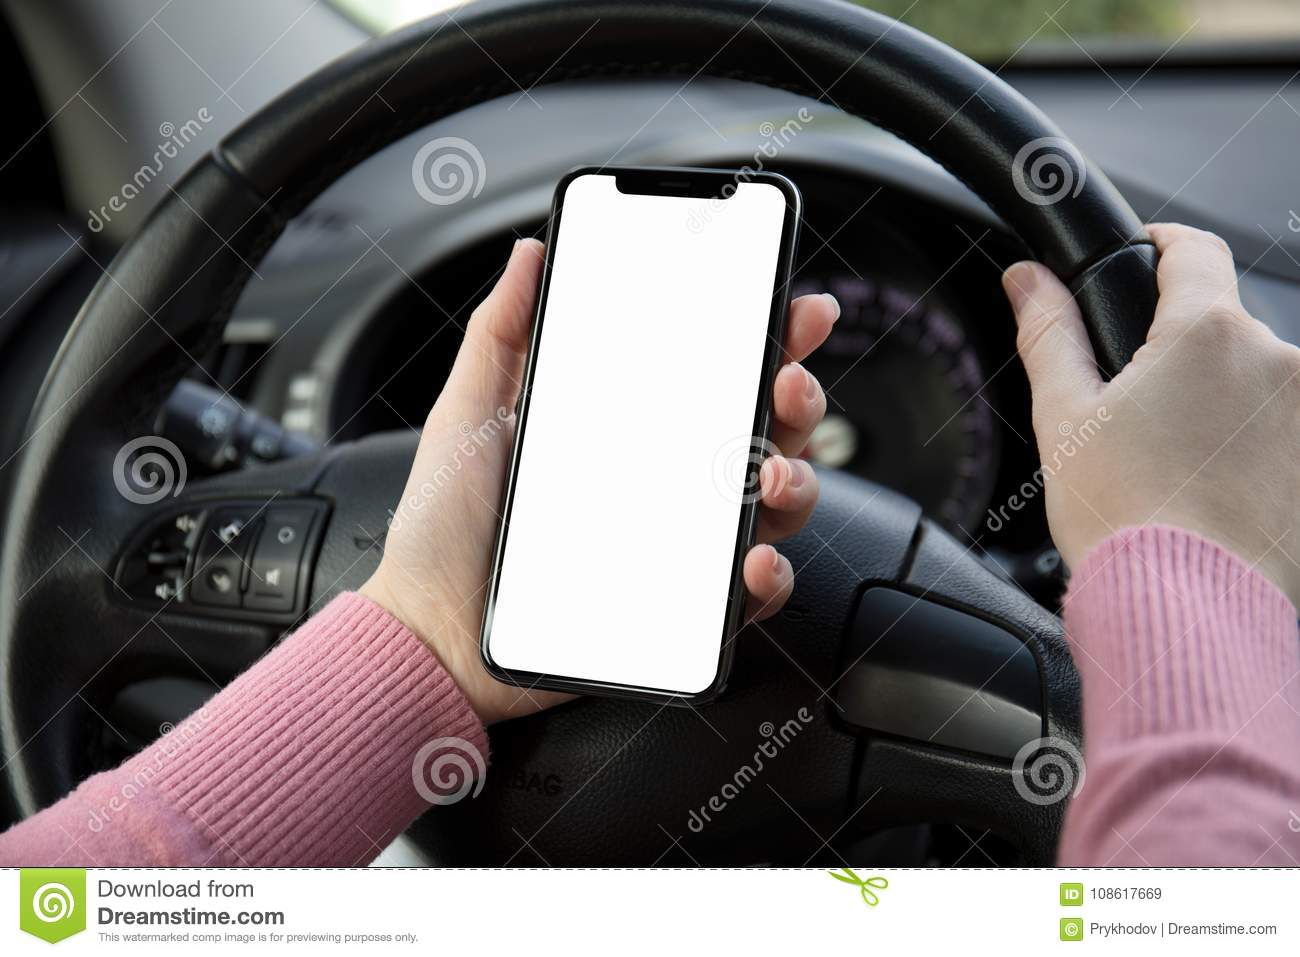 Women hands holding phone with screen in the car